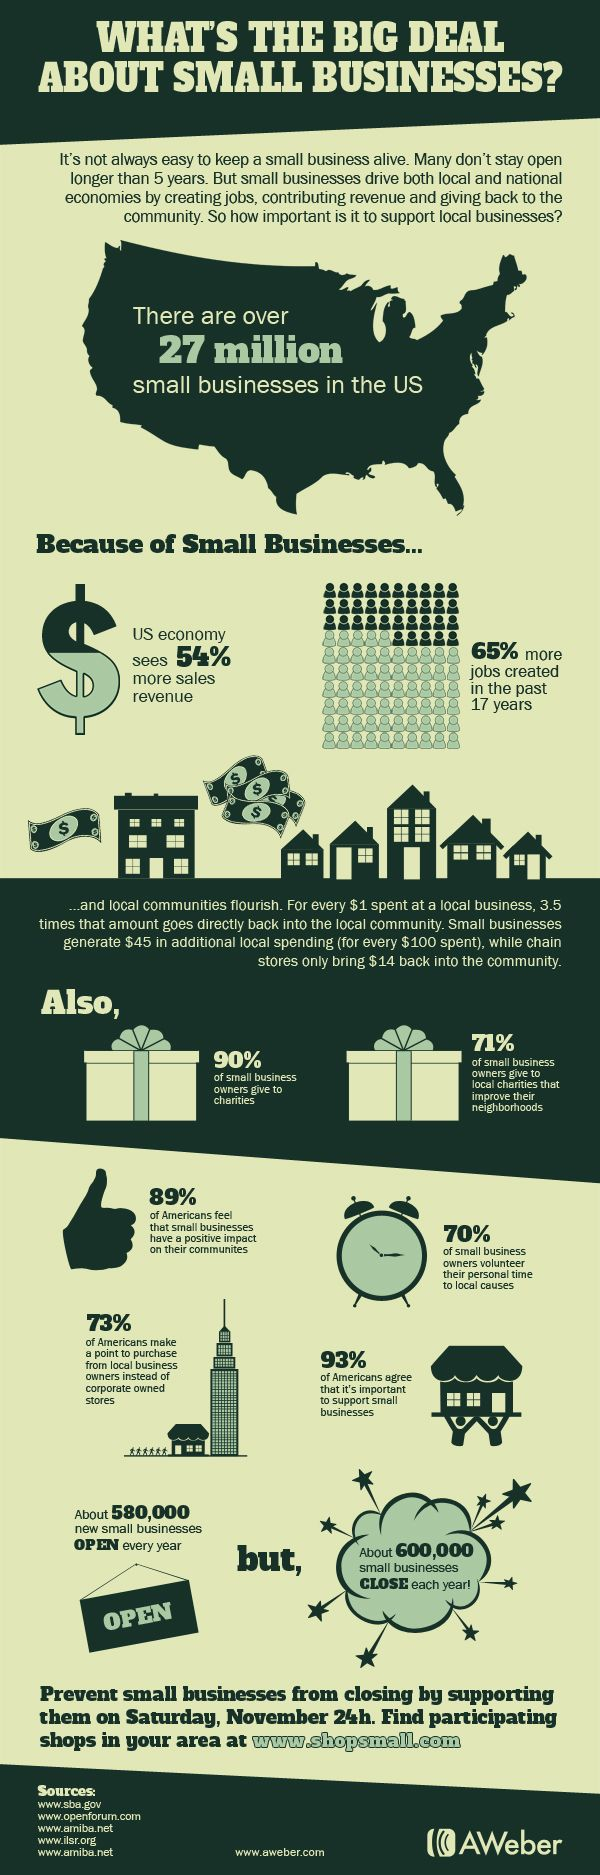 Small Business Saturday - What